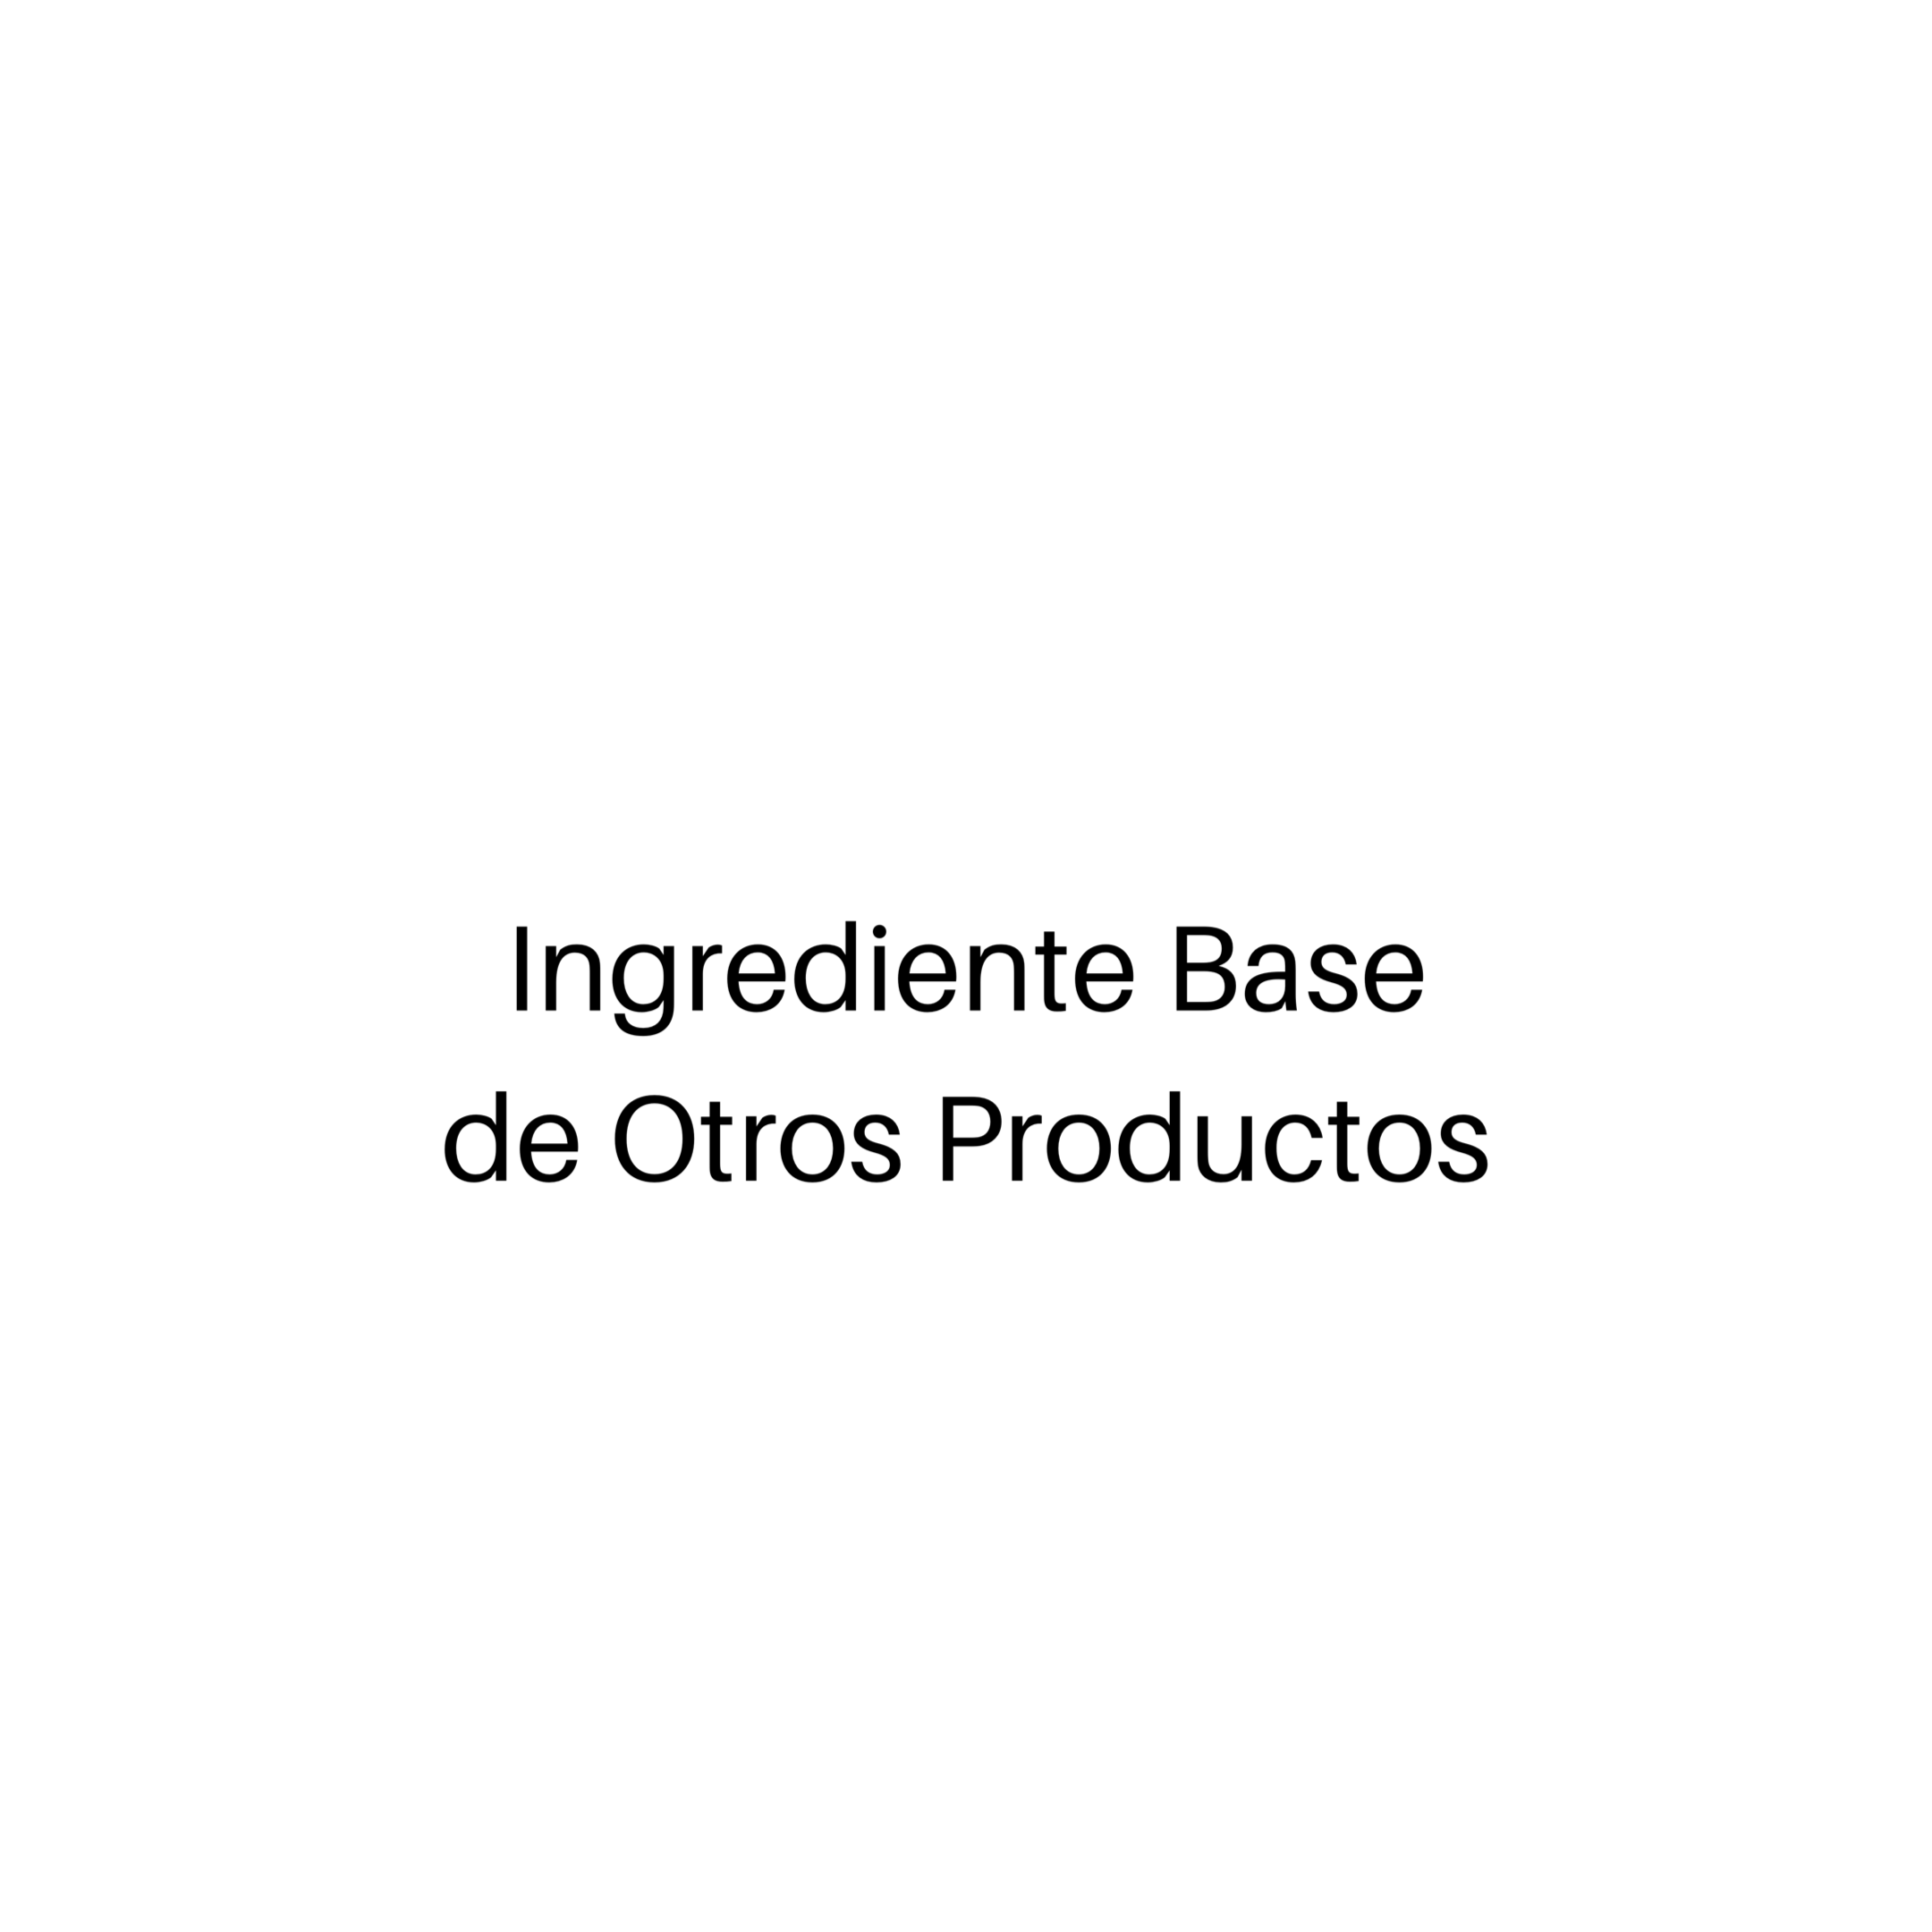 Ingrediente Base